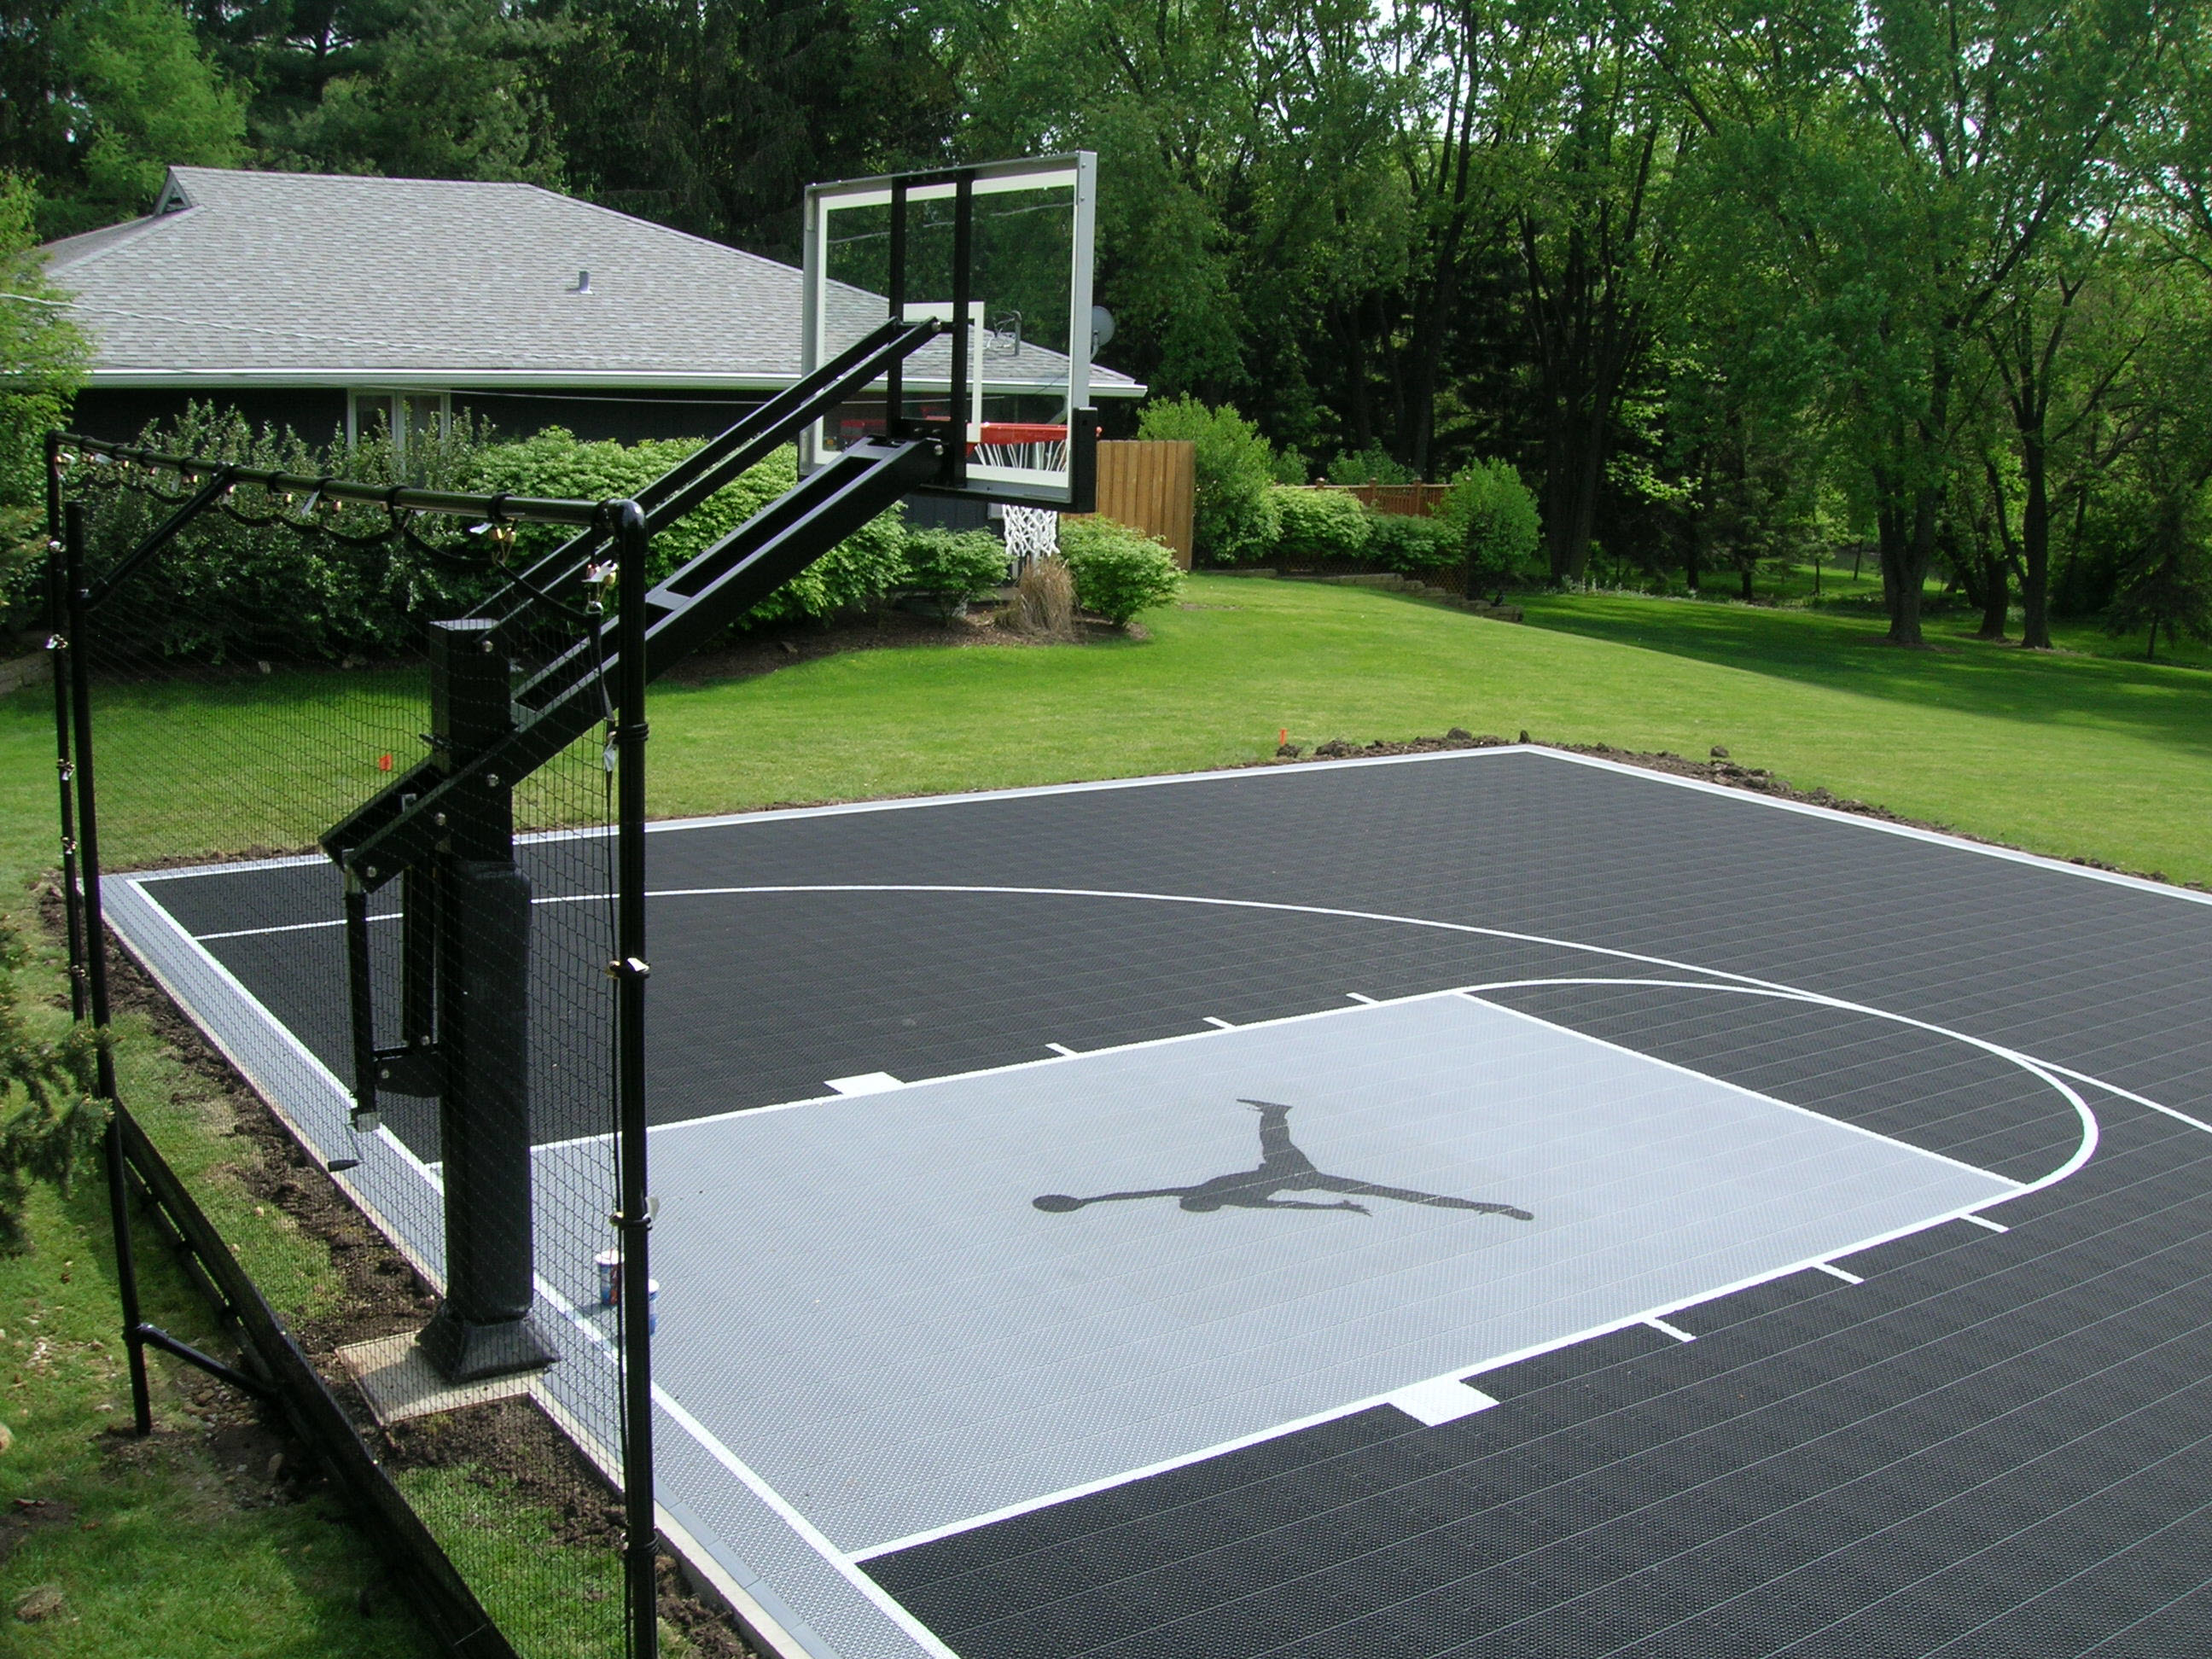 Basketporn top 13 backyard basketball courts basketporn Basketball court installation cost